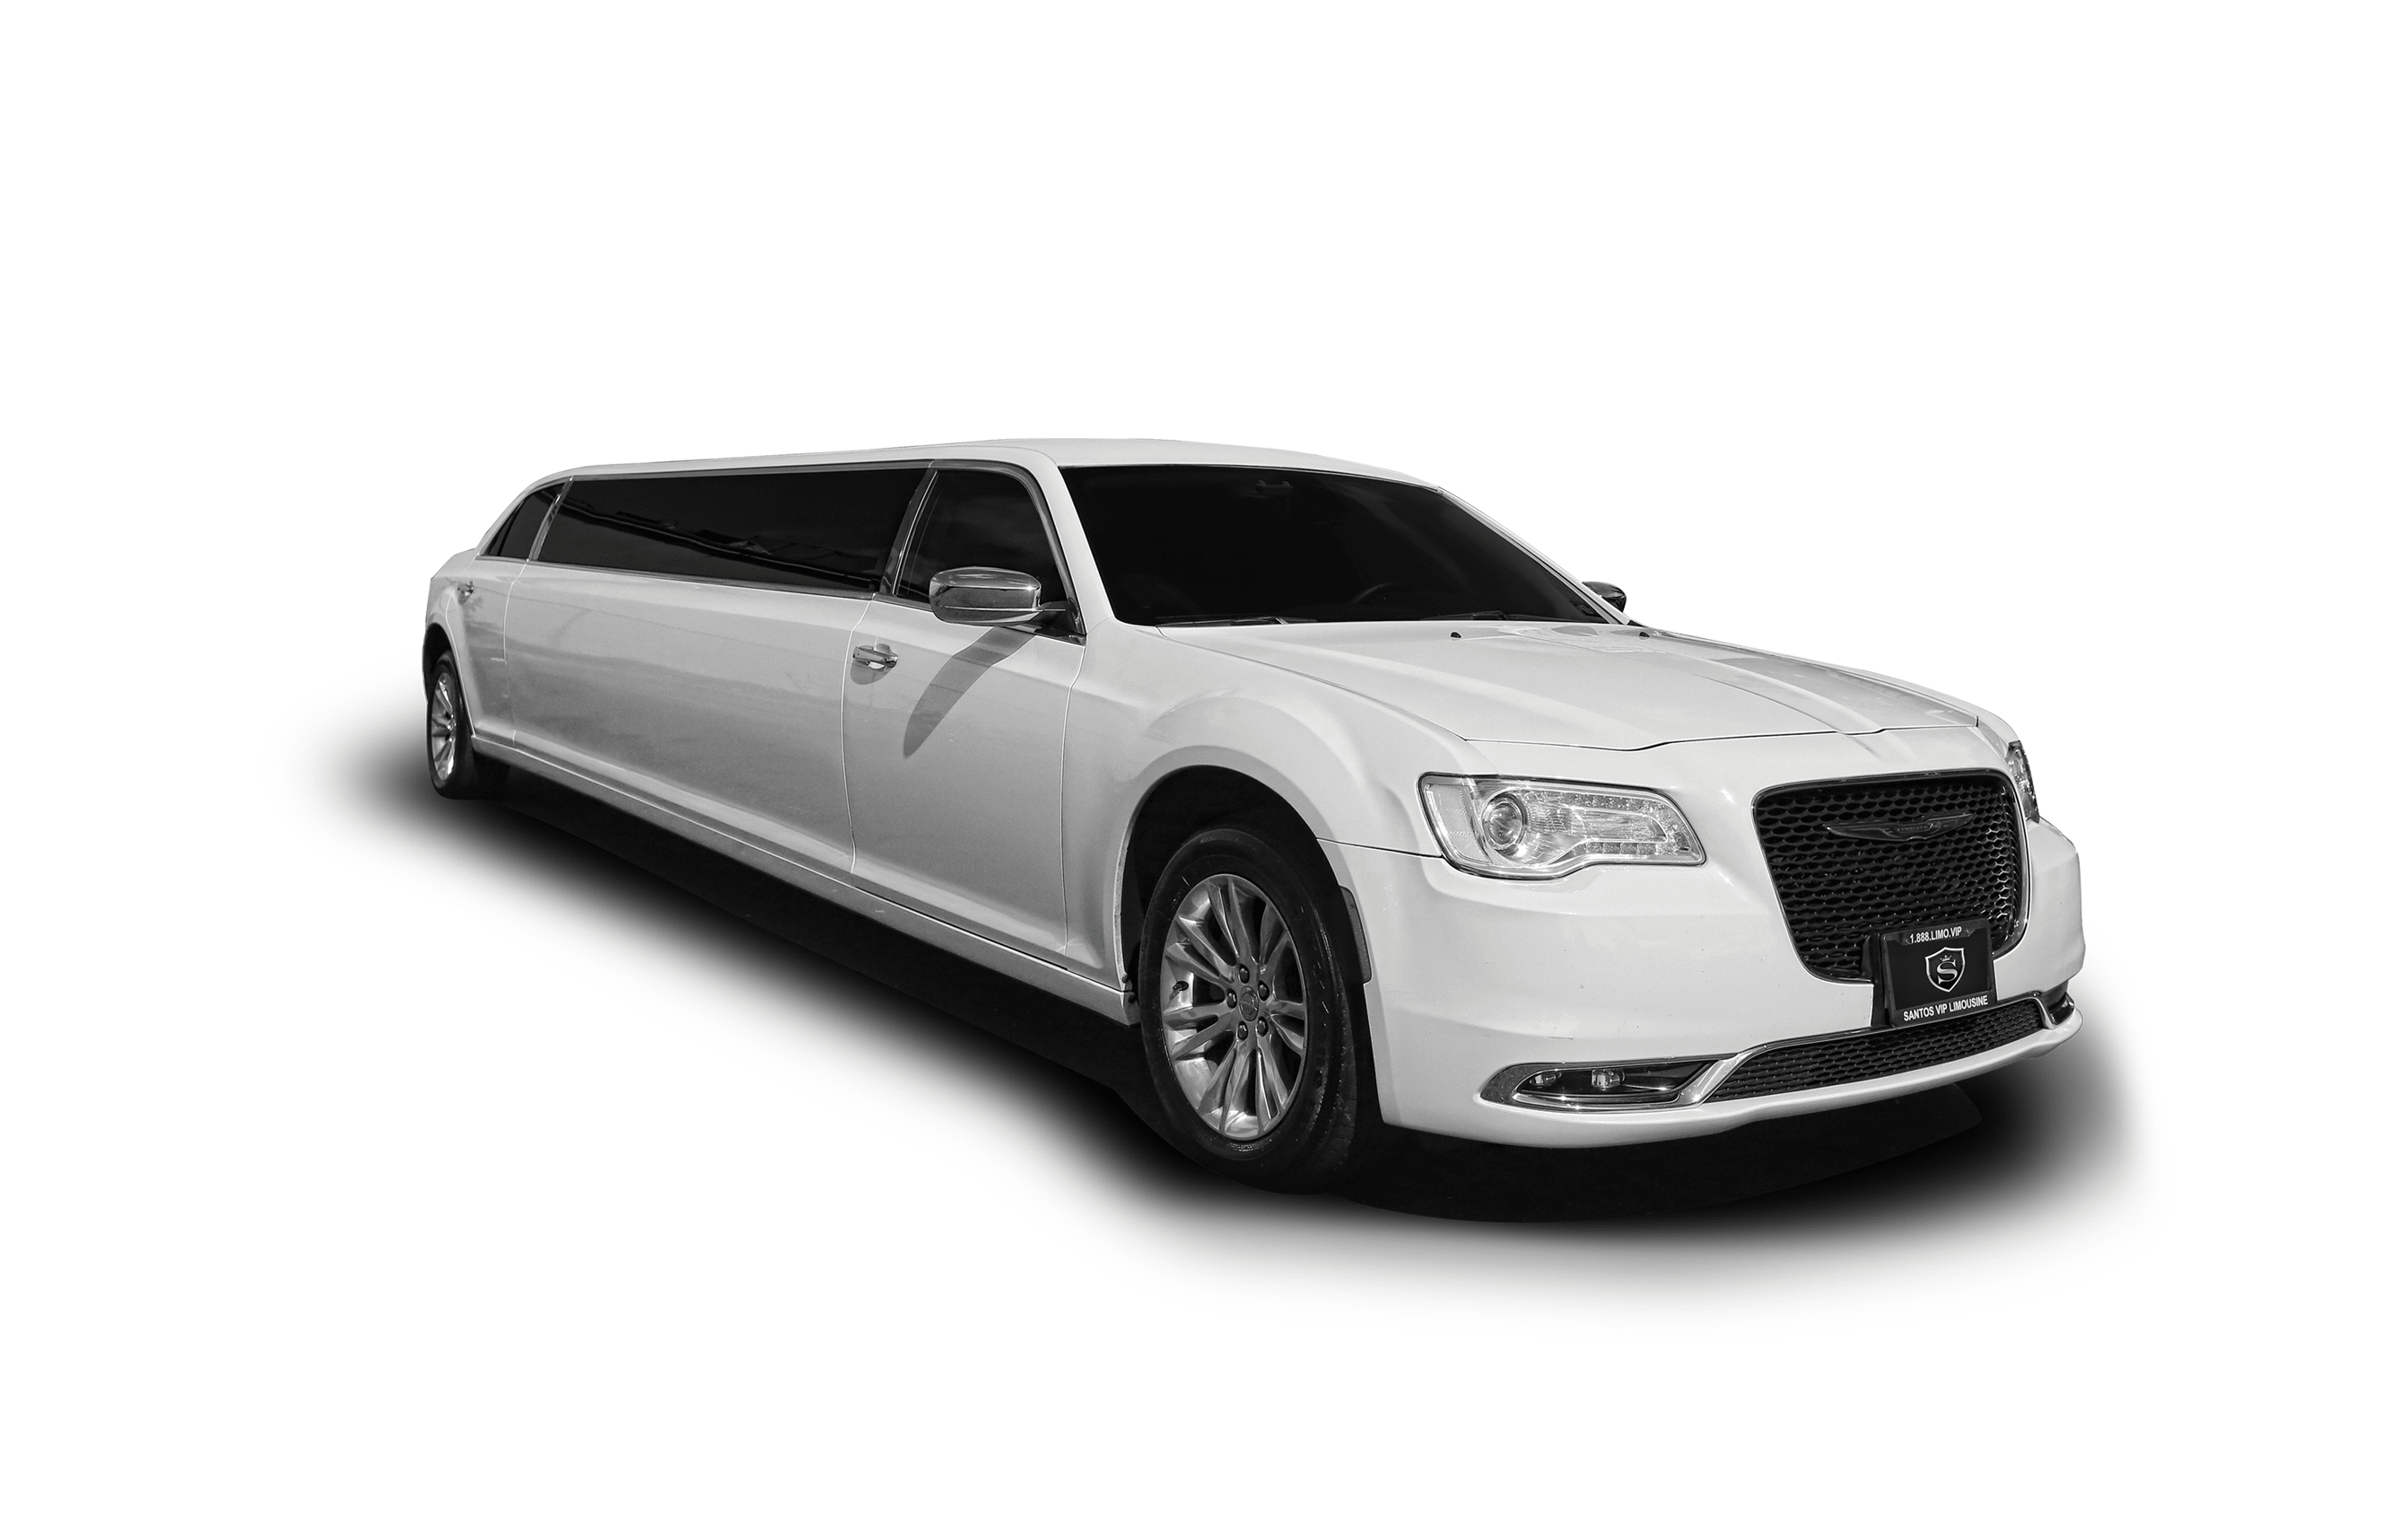 Chrysler 300 Limo - New York City Holiday Light Tour with Santos VIP Limousine Service